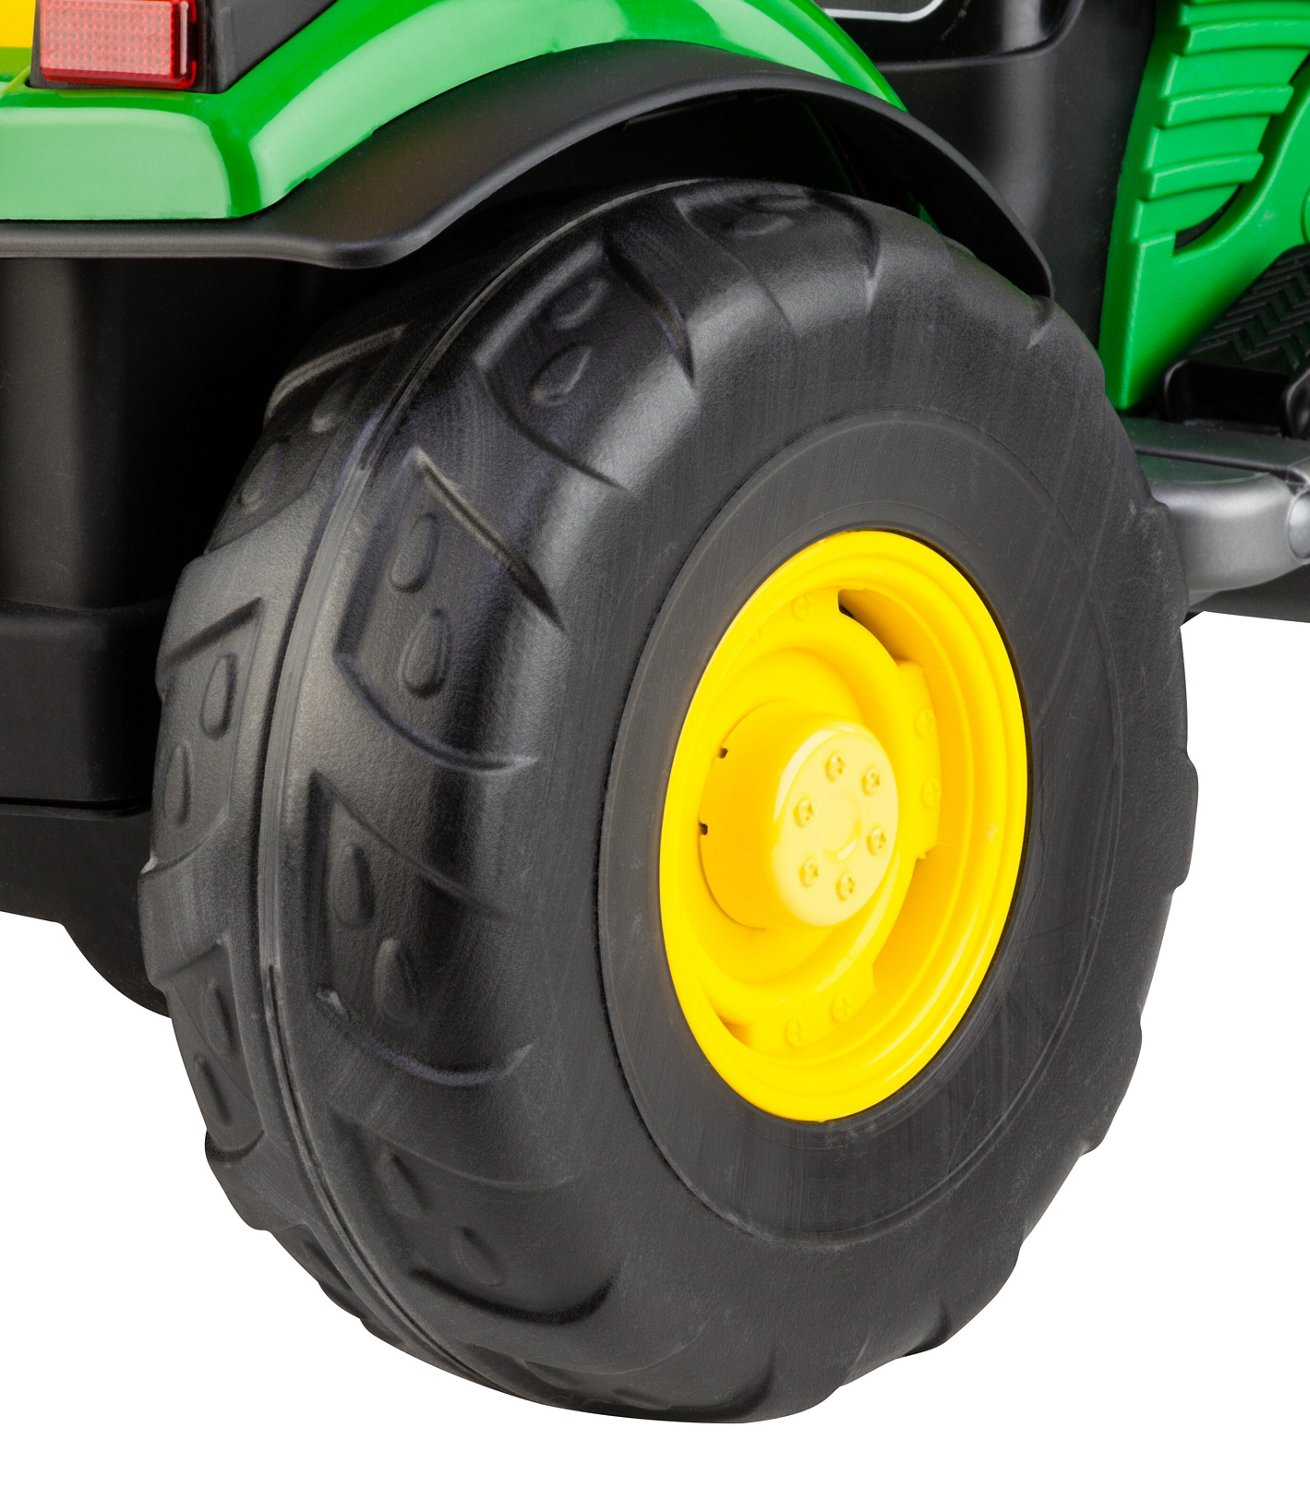 Peg Perego John Deere Mini Power Loader 6 v Ride-On Tractor - view number 4